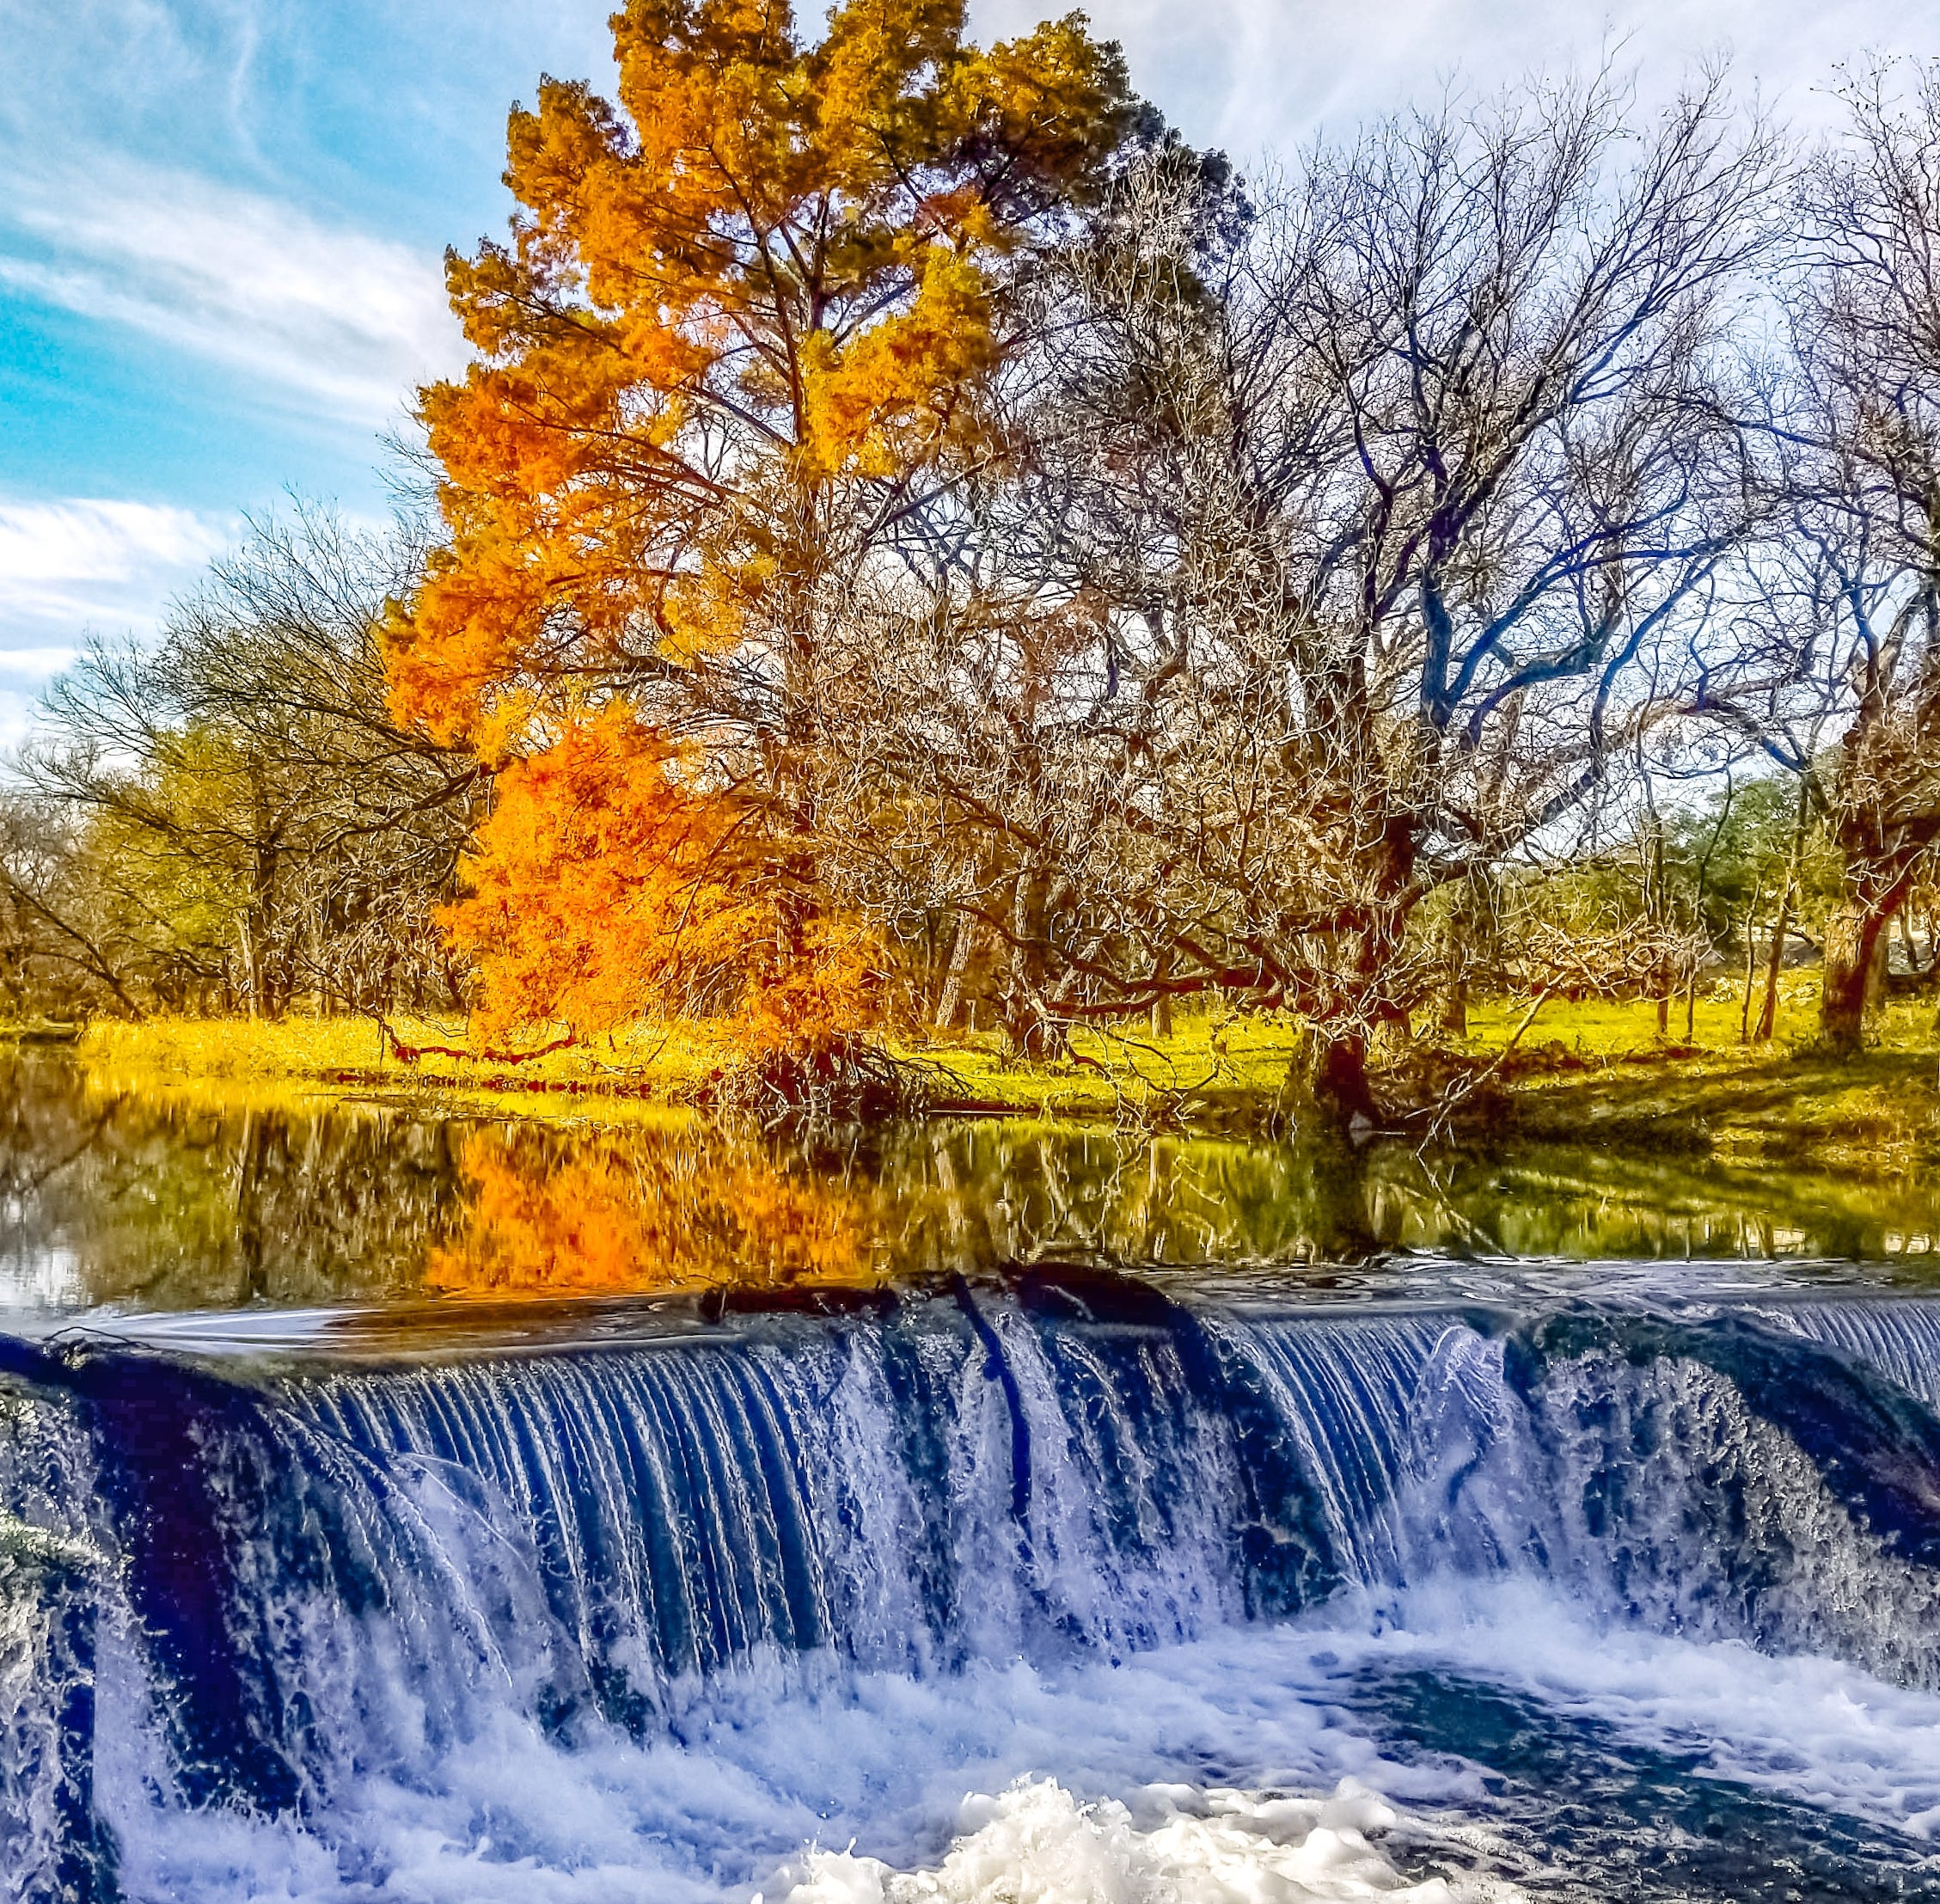 Fall colors lure photographer to capture S. Concho River